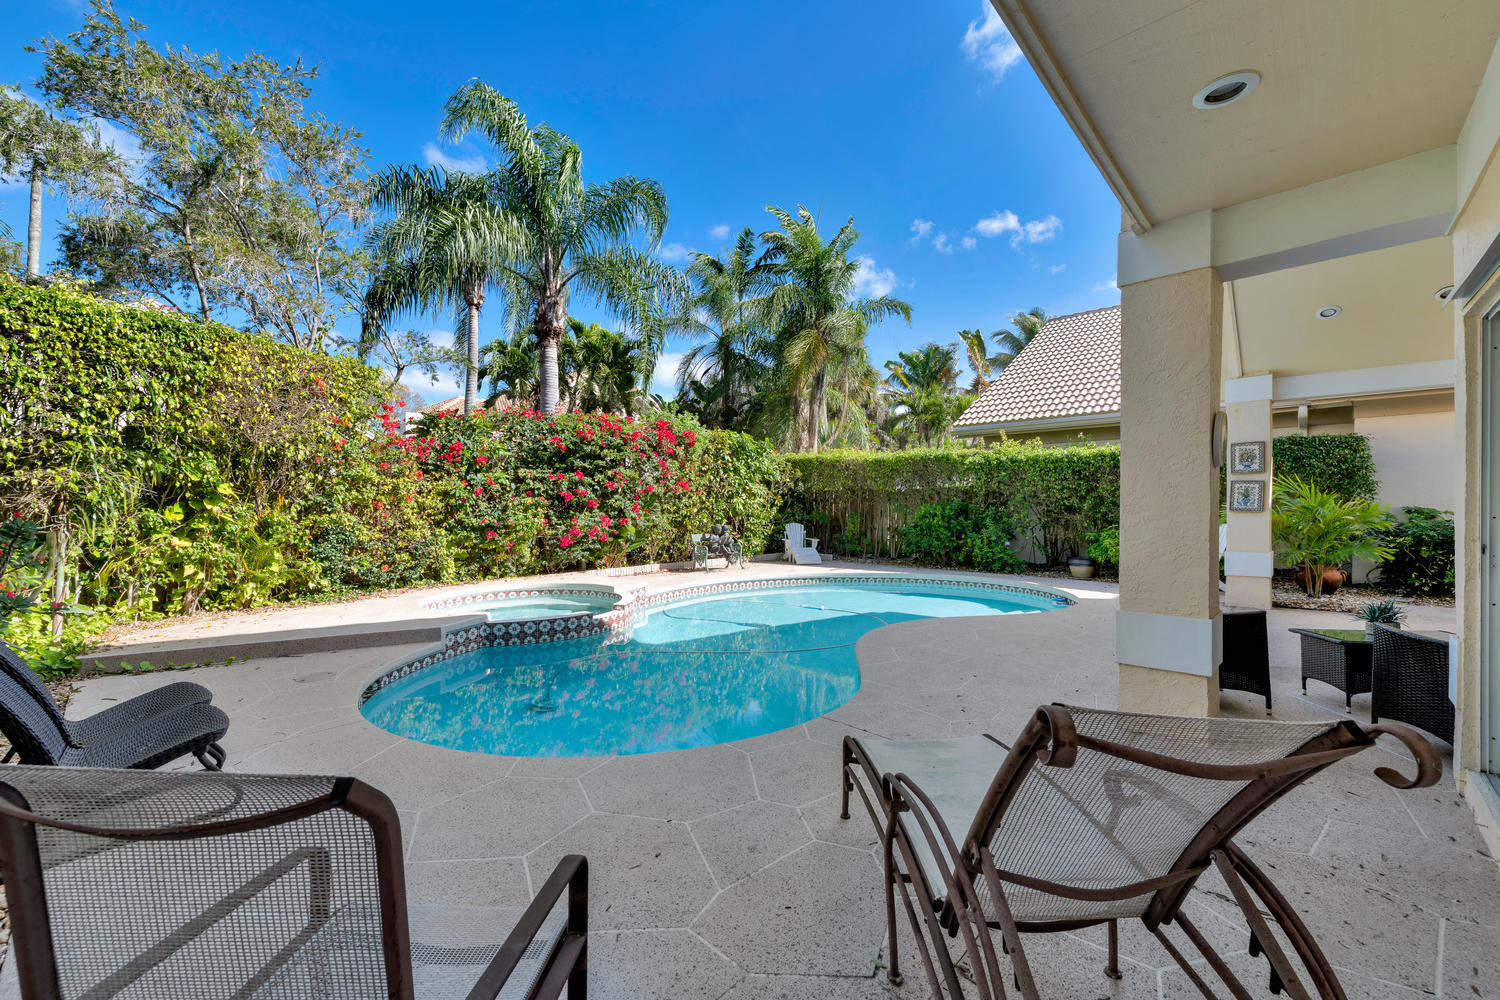 6799 Augusta Court, West Palm Beach, Florida 33412, 3 Bedrooms Bedrooms, ,2.1 BathroomsBathrooms,A,Single family,Augusta,RX-10503816